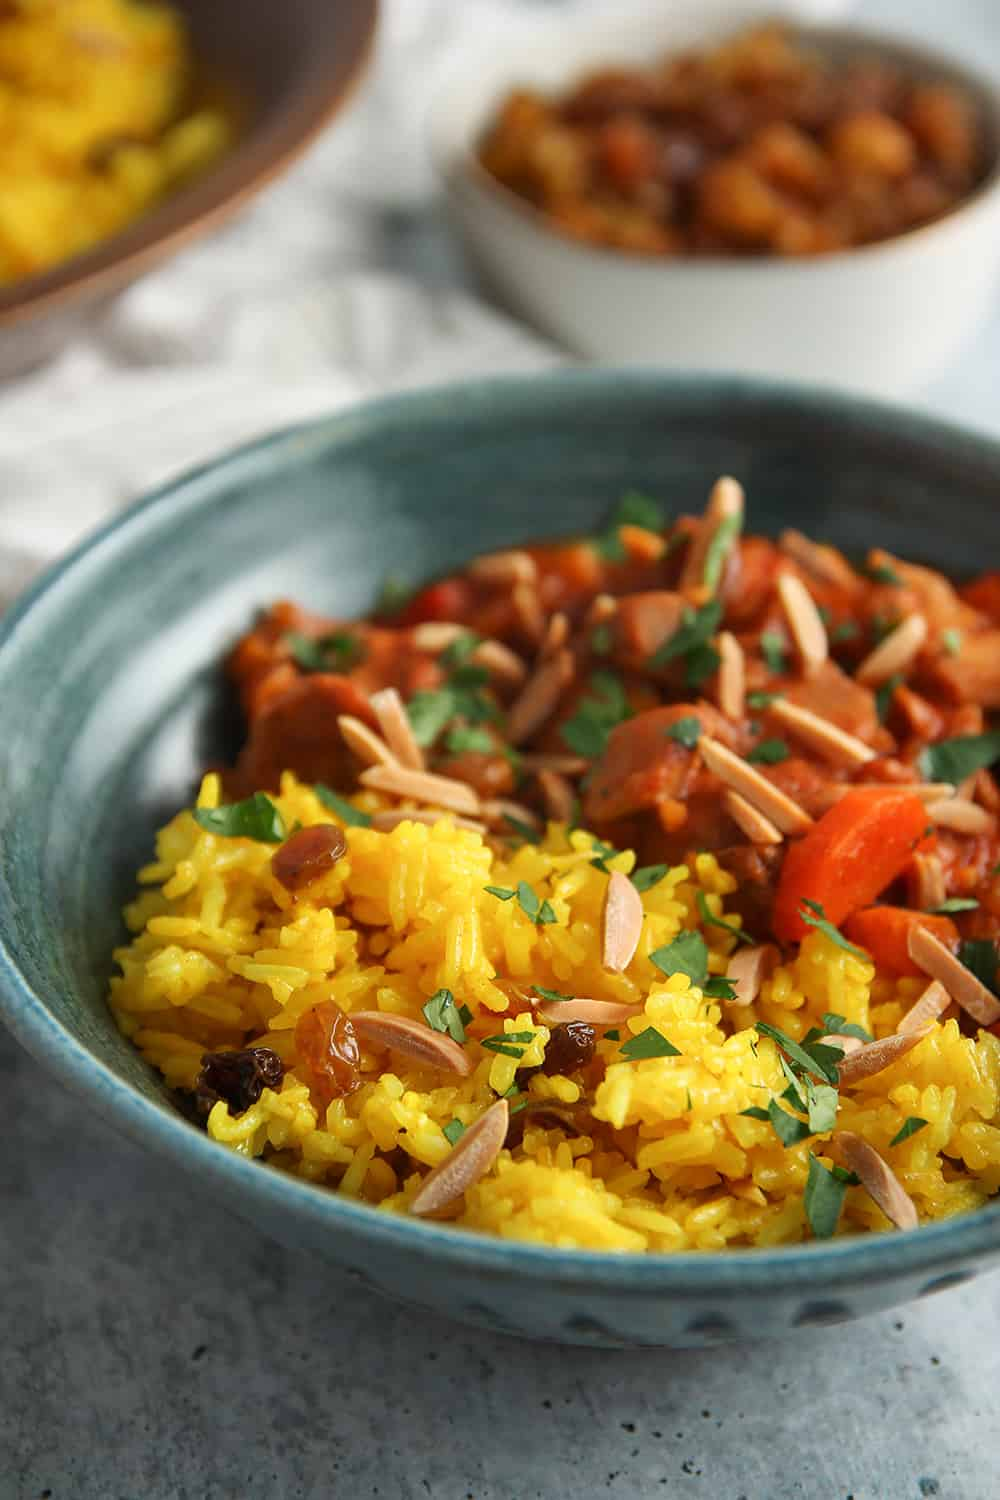 Complement the rich flavors of Quick Moroccan Chicken Stew with Ginger-Turmeric Rice